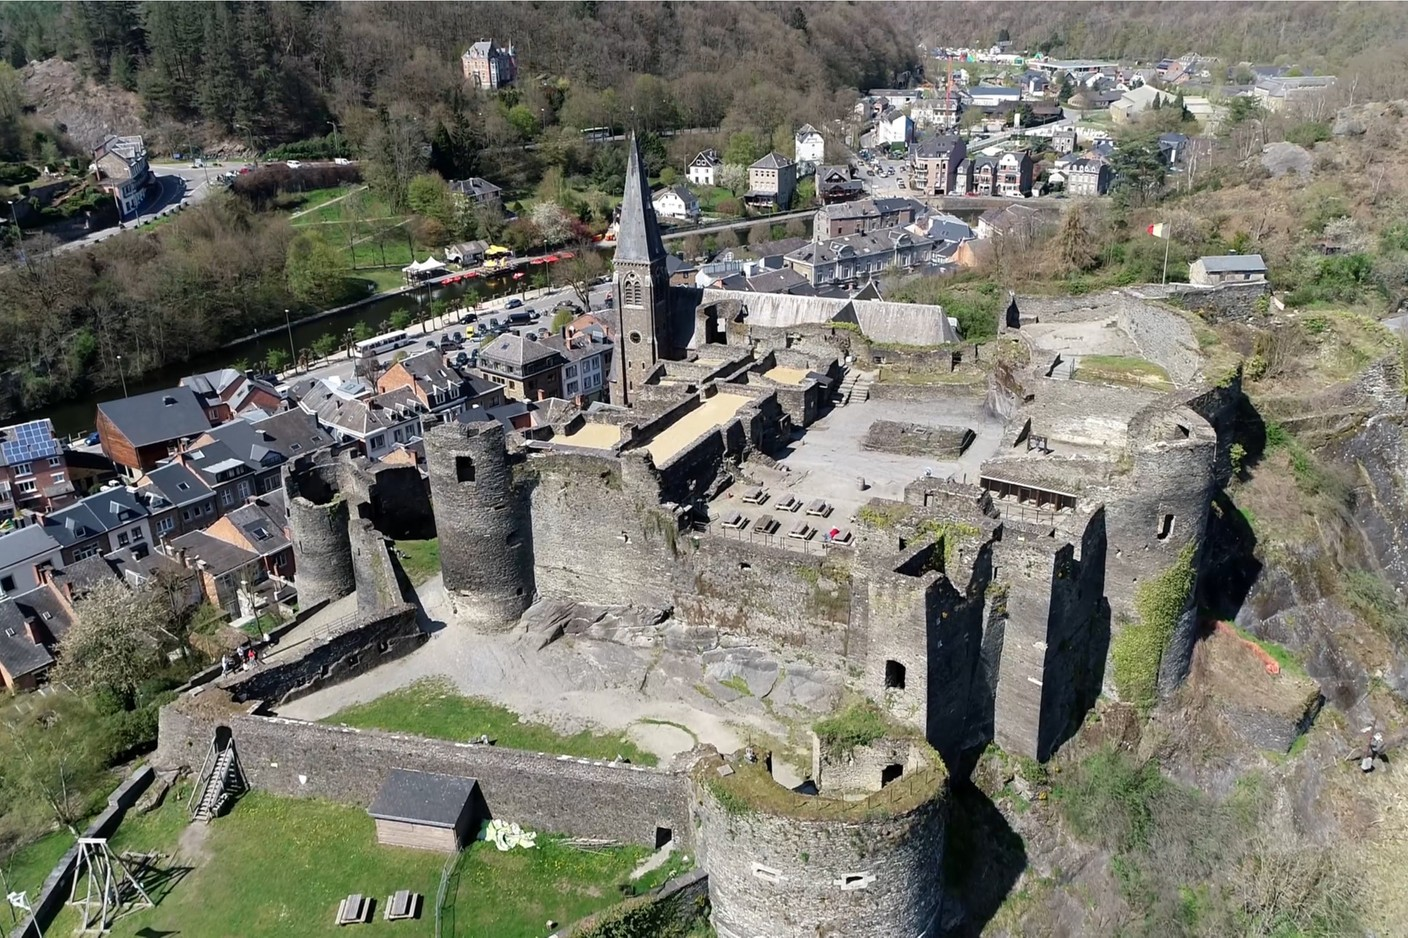 Extensively modified under Louis XIV, the castle of La Roche was then subject to fire, partial dismantling, vandalism and the bombing of the Battle of the Bulge. (Photo: Shutterstock)